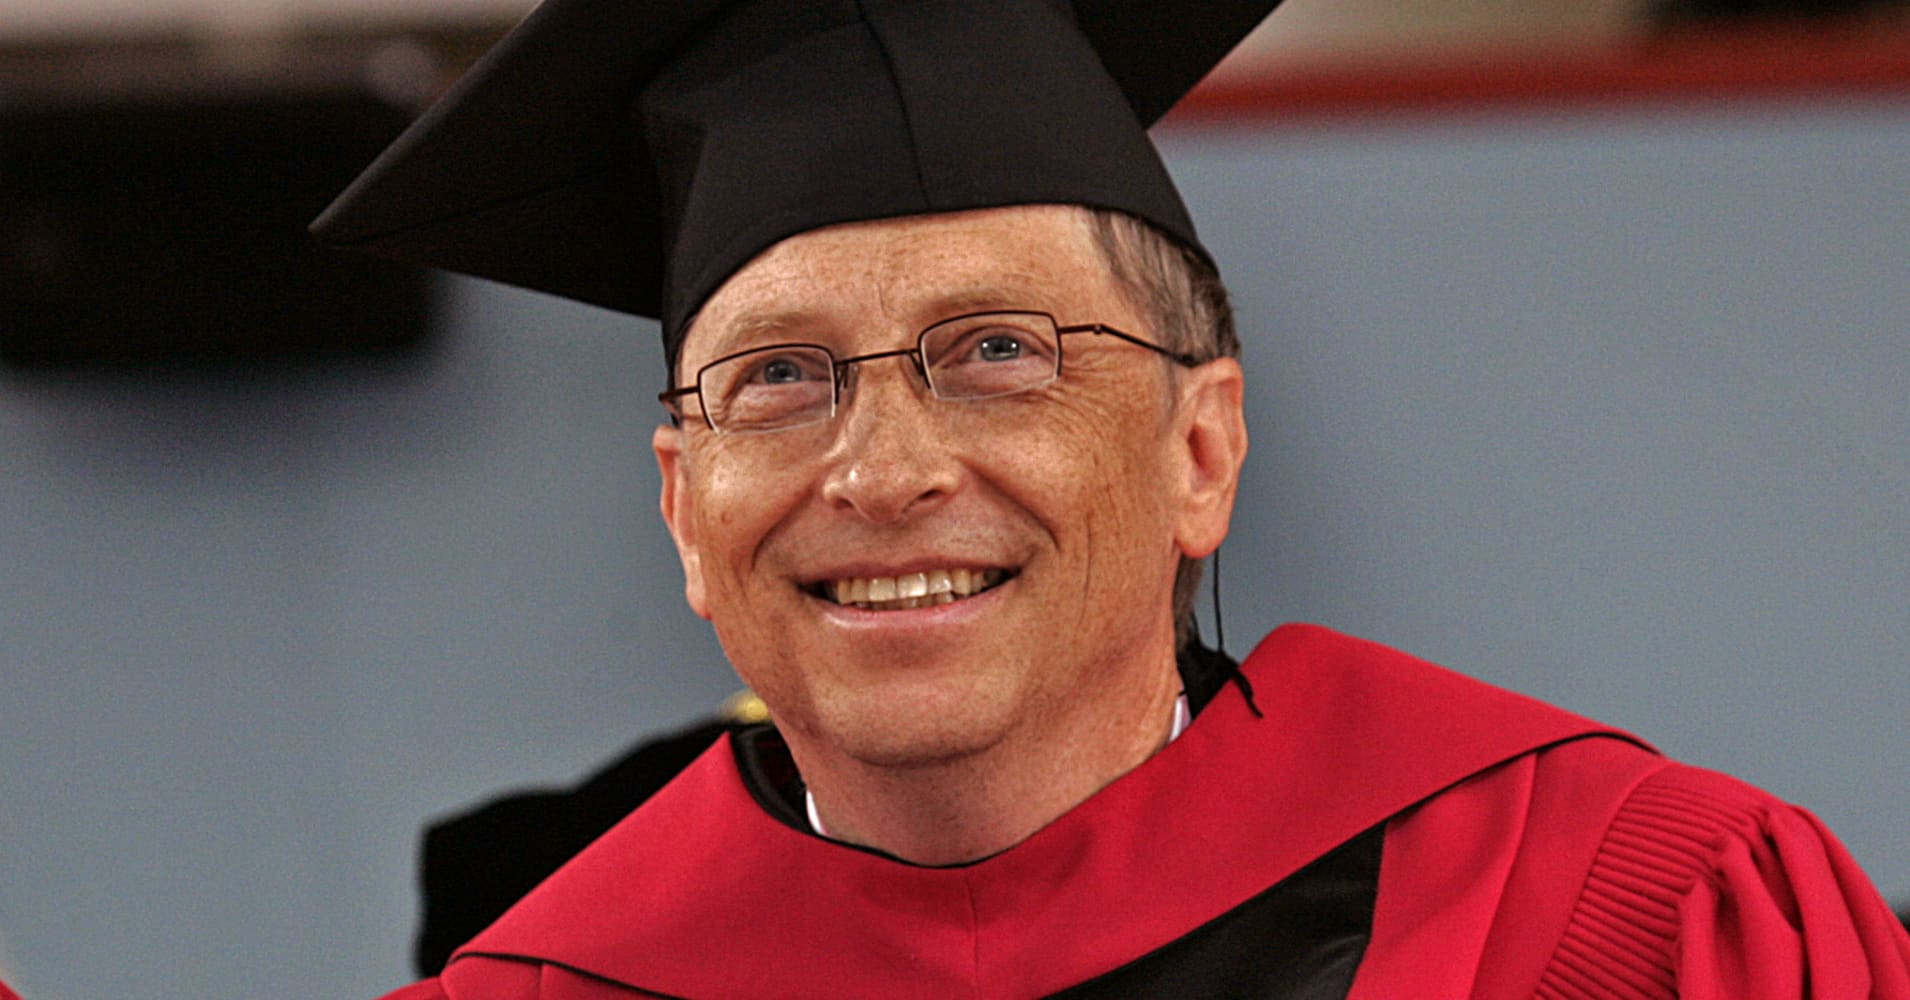 At Harvard University Bill Gates grins from ear to ear who looks over his honorary degree.